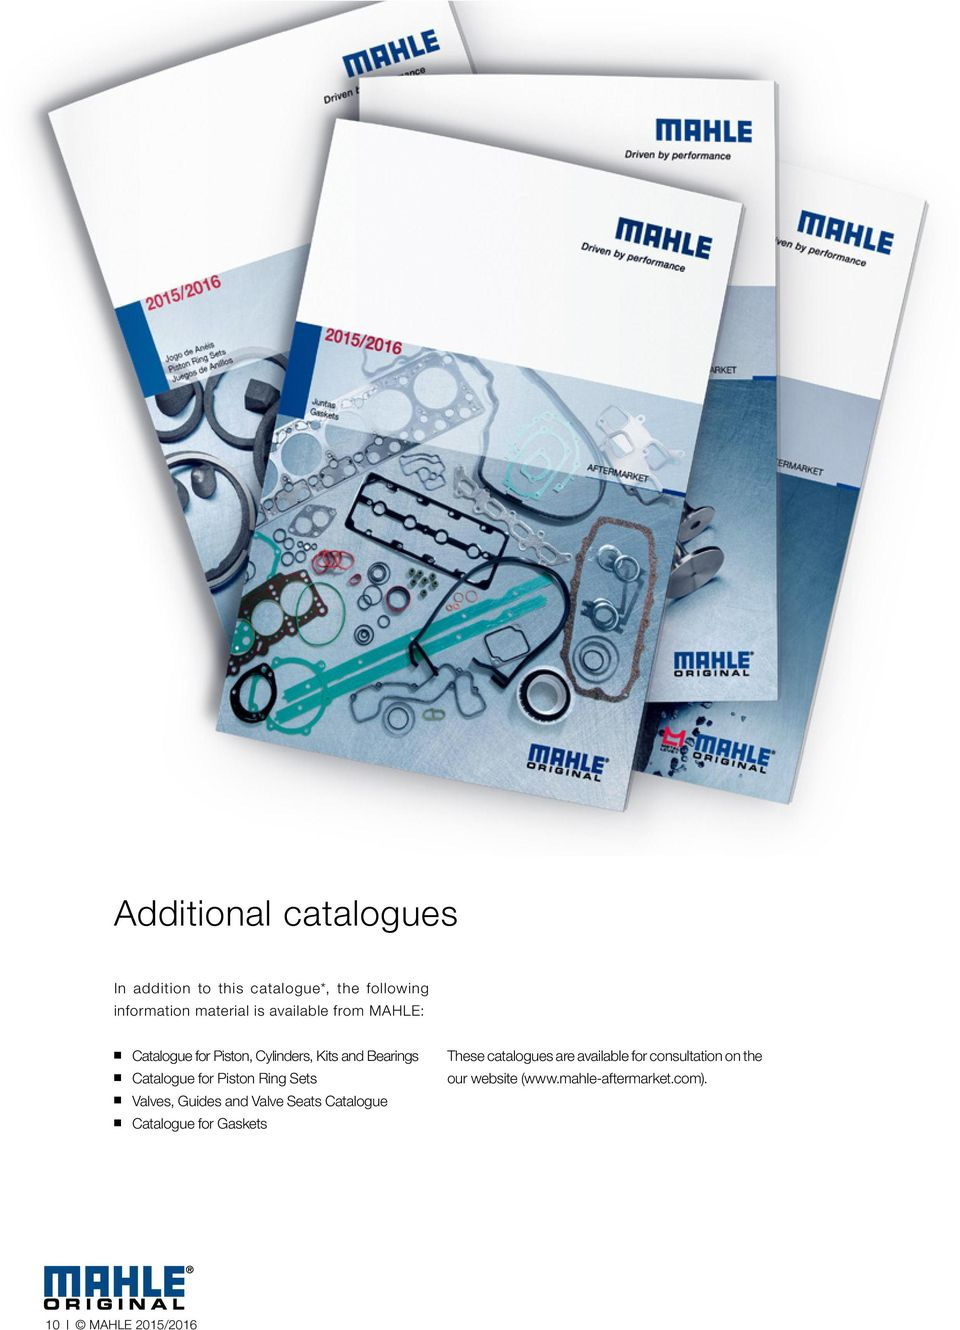 Ring Sets Valves, Guides and Valve Seats Catalogue Catalogue for Gaskets These catalogues are